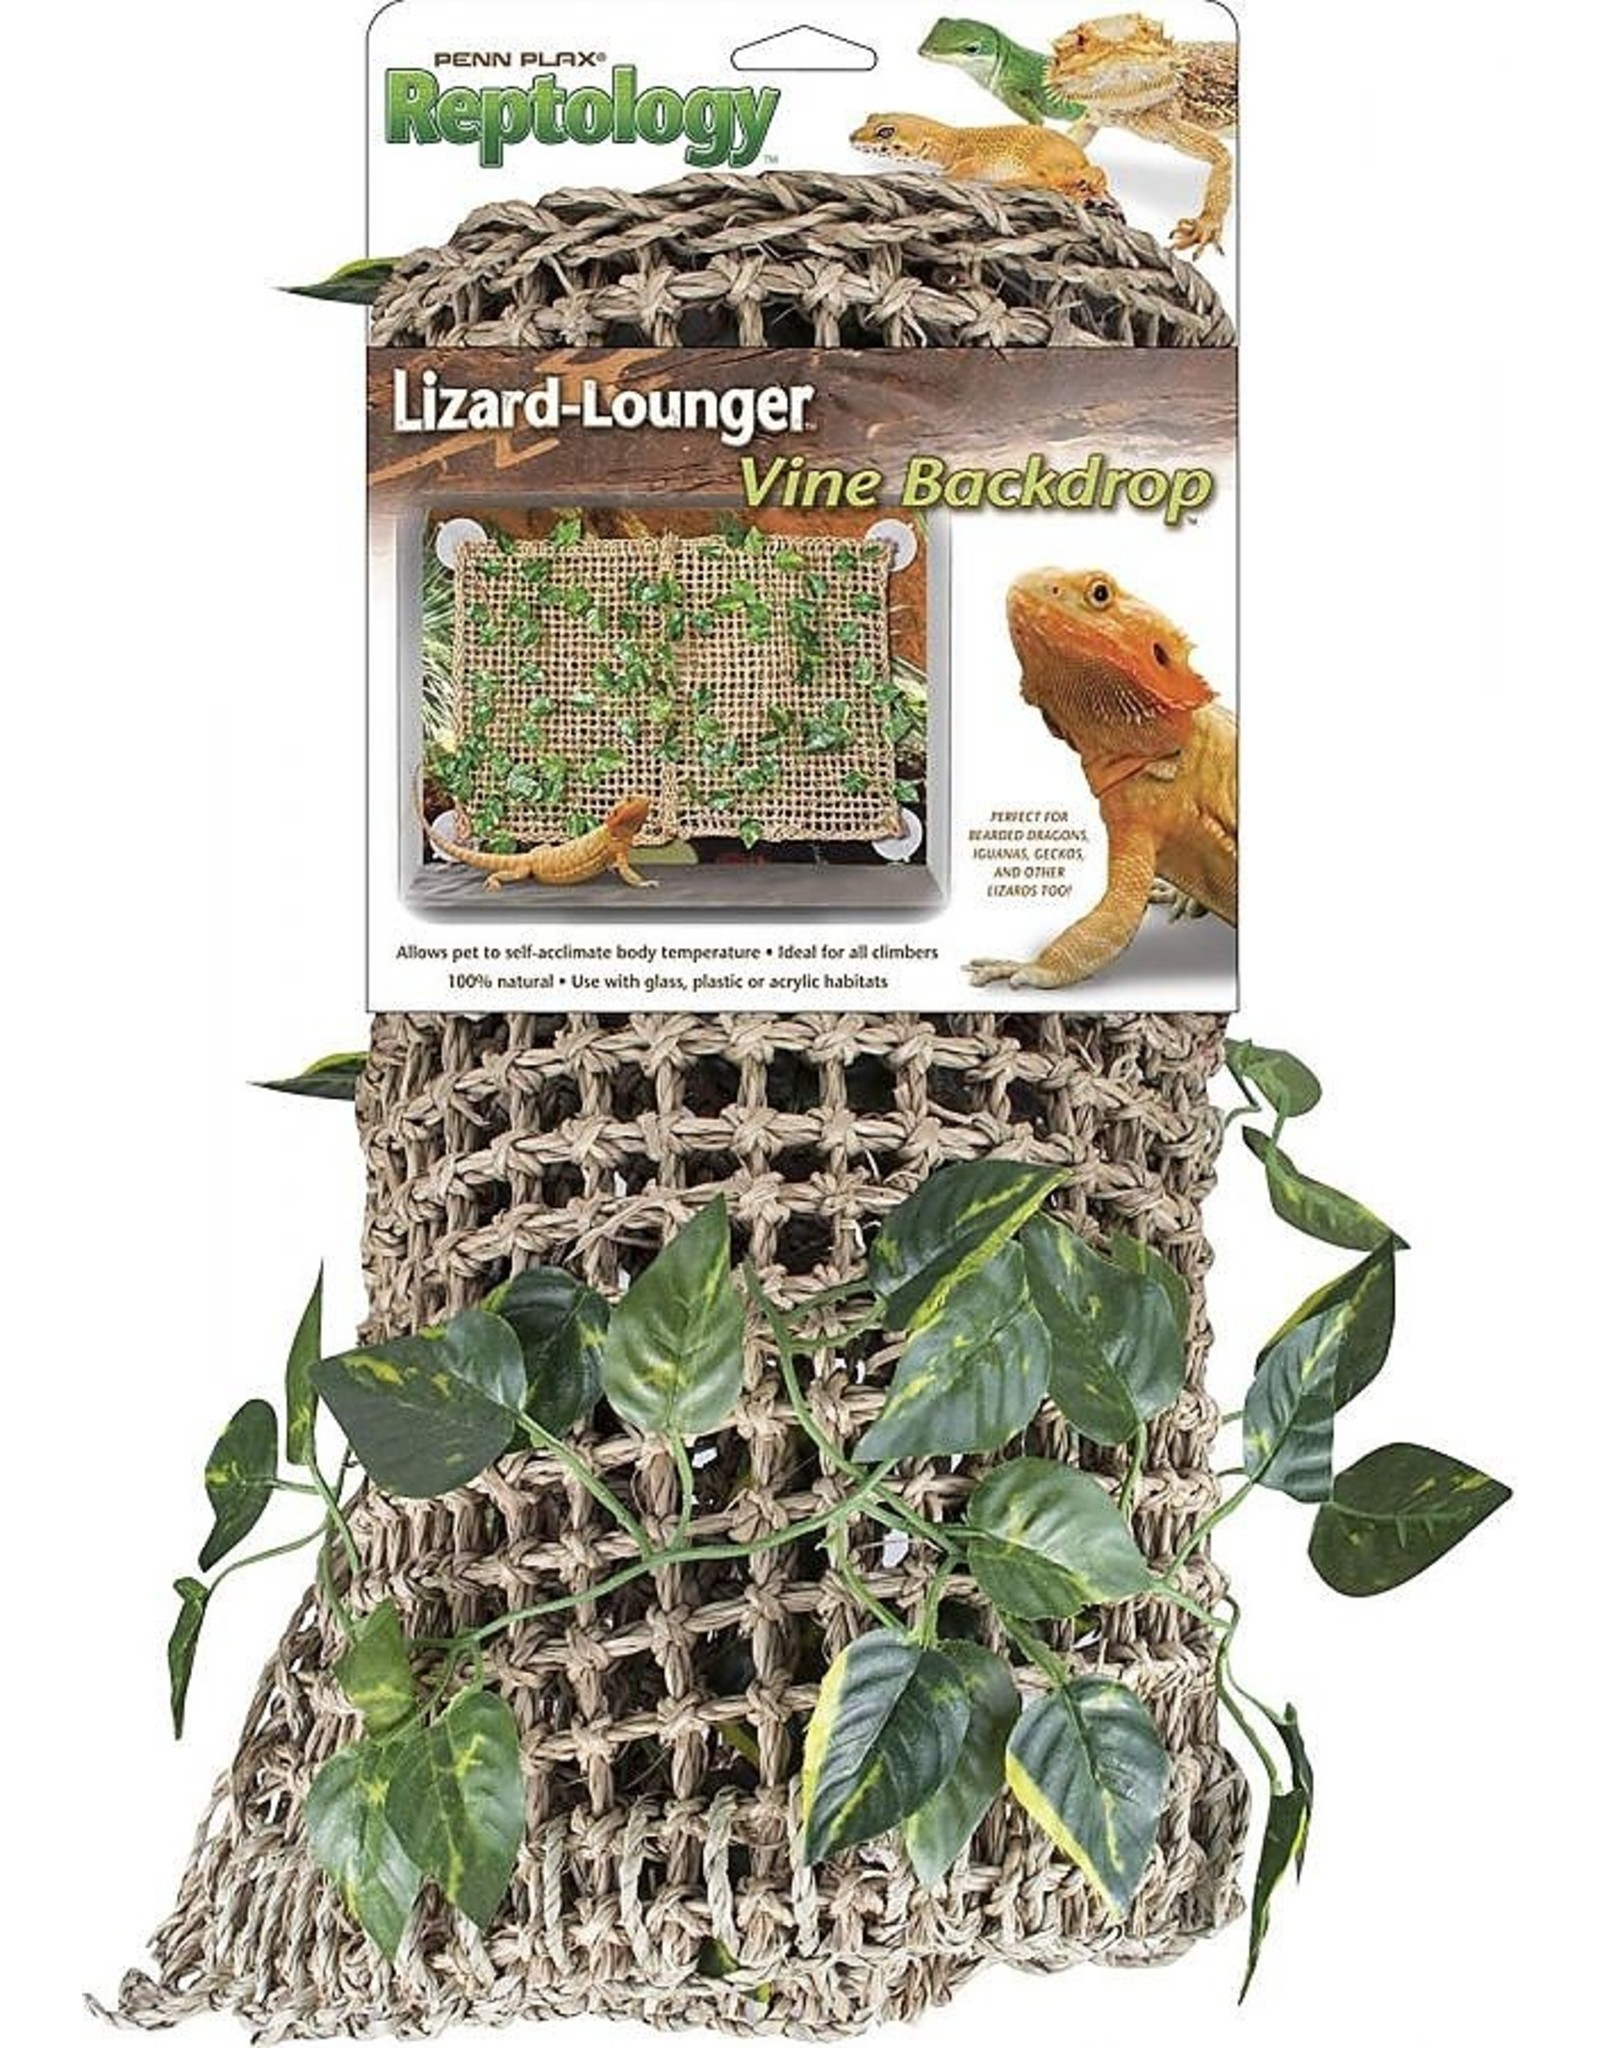 Penn Plax PENN PLAX Natural Lizard Lounger Vine Backdrop